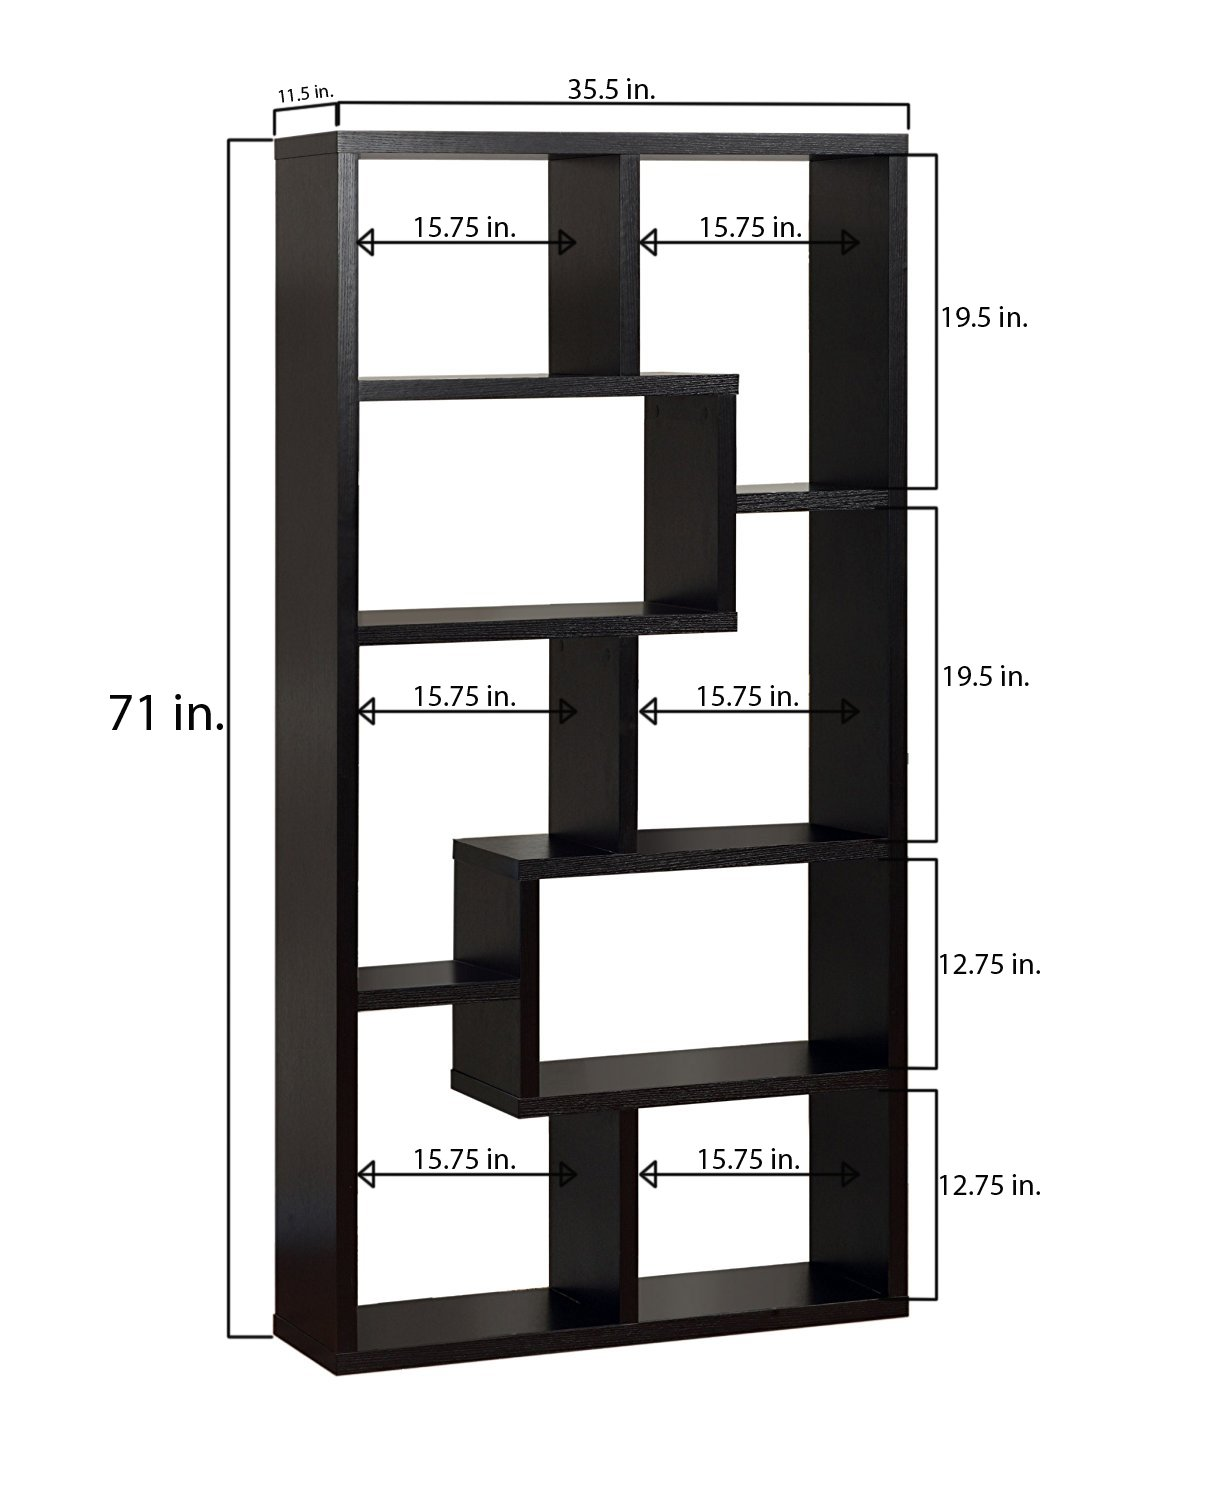 Backless Bookshelves Amazon.com: Iohomes Modern Backless Display Stand-bookcase, Black: Kitchen  U0026 Dining